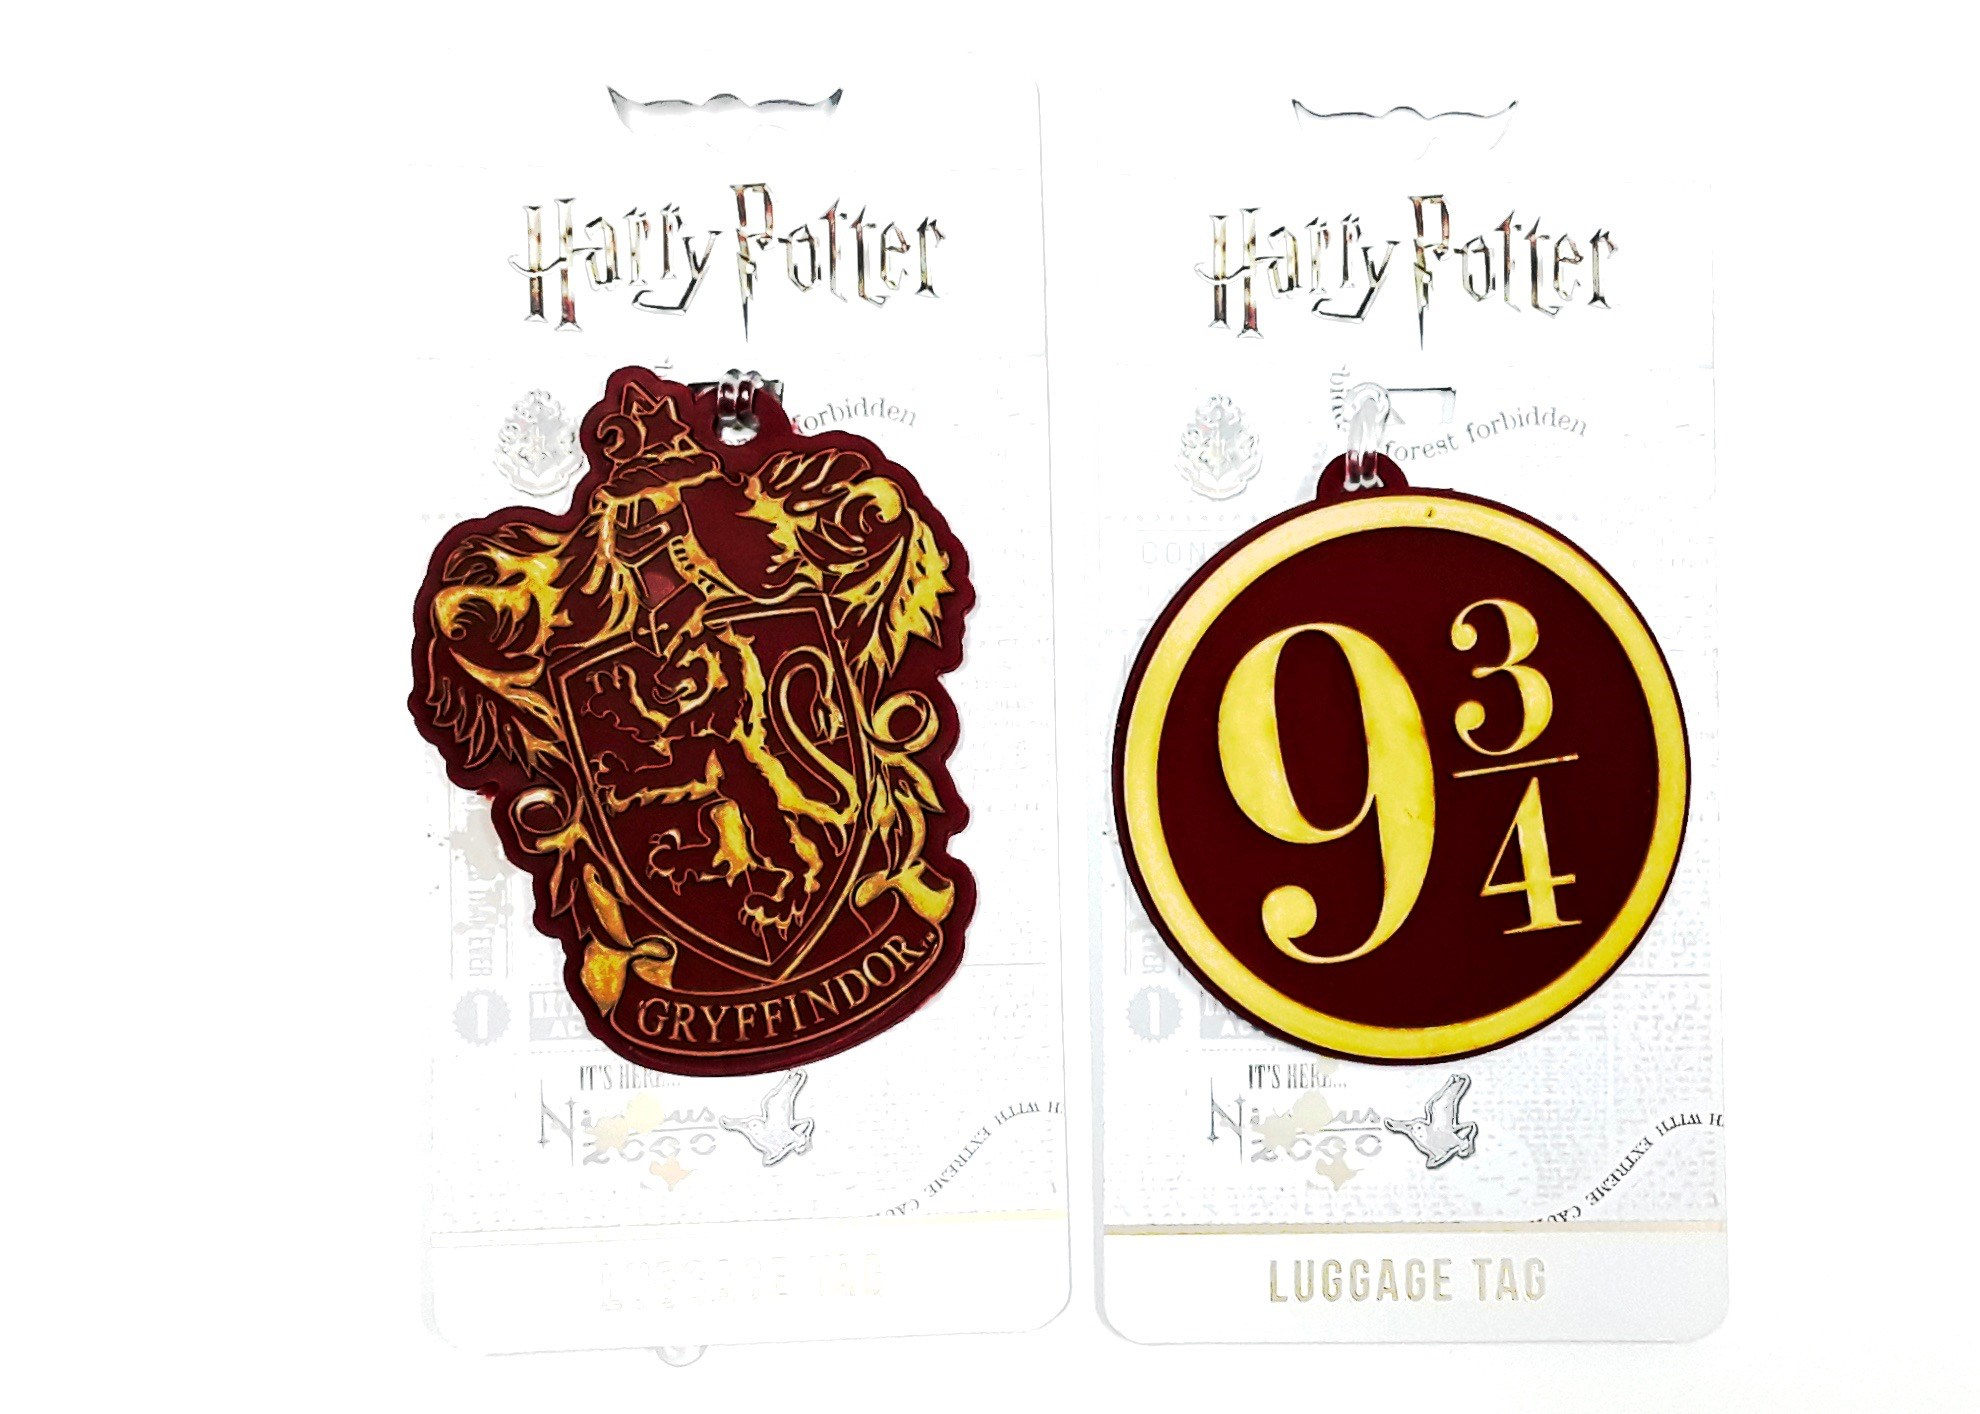 Harry Potter Luggage Tag Asst